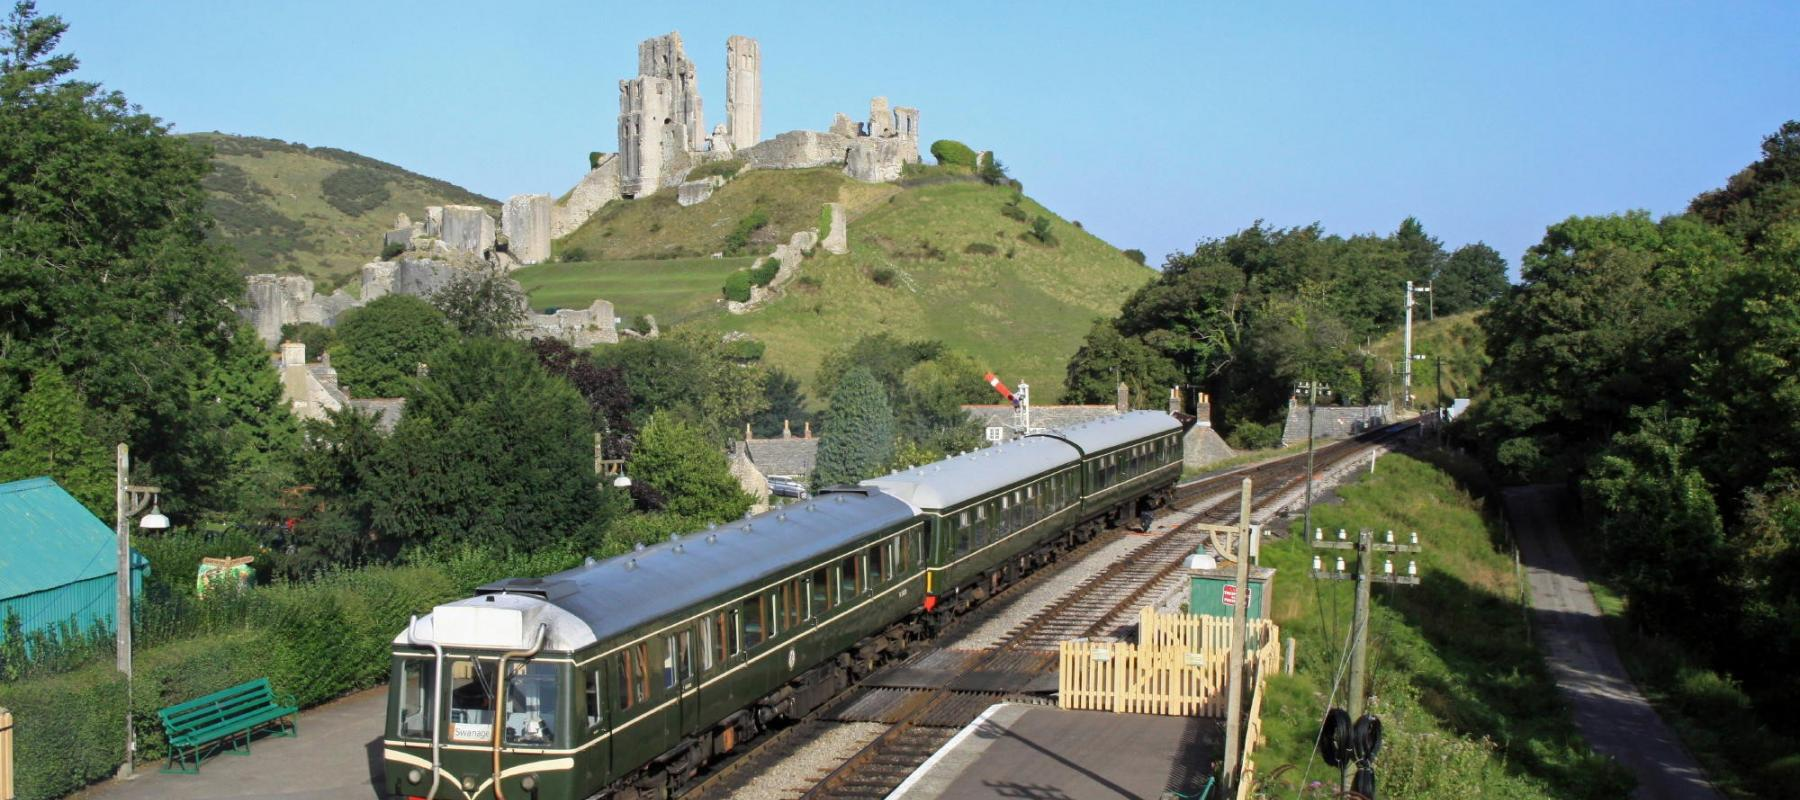 Days out by rail in Swanage, Purbeck